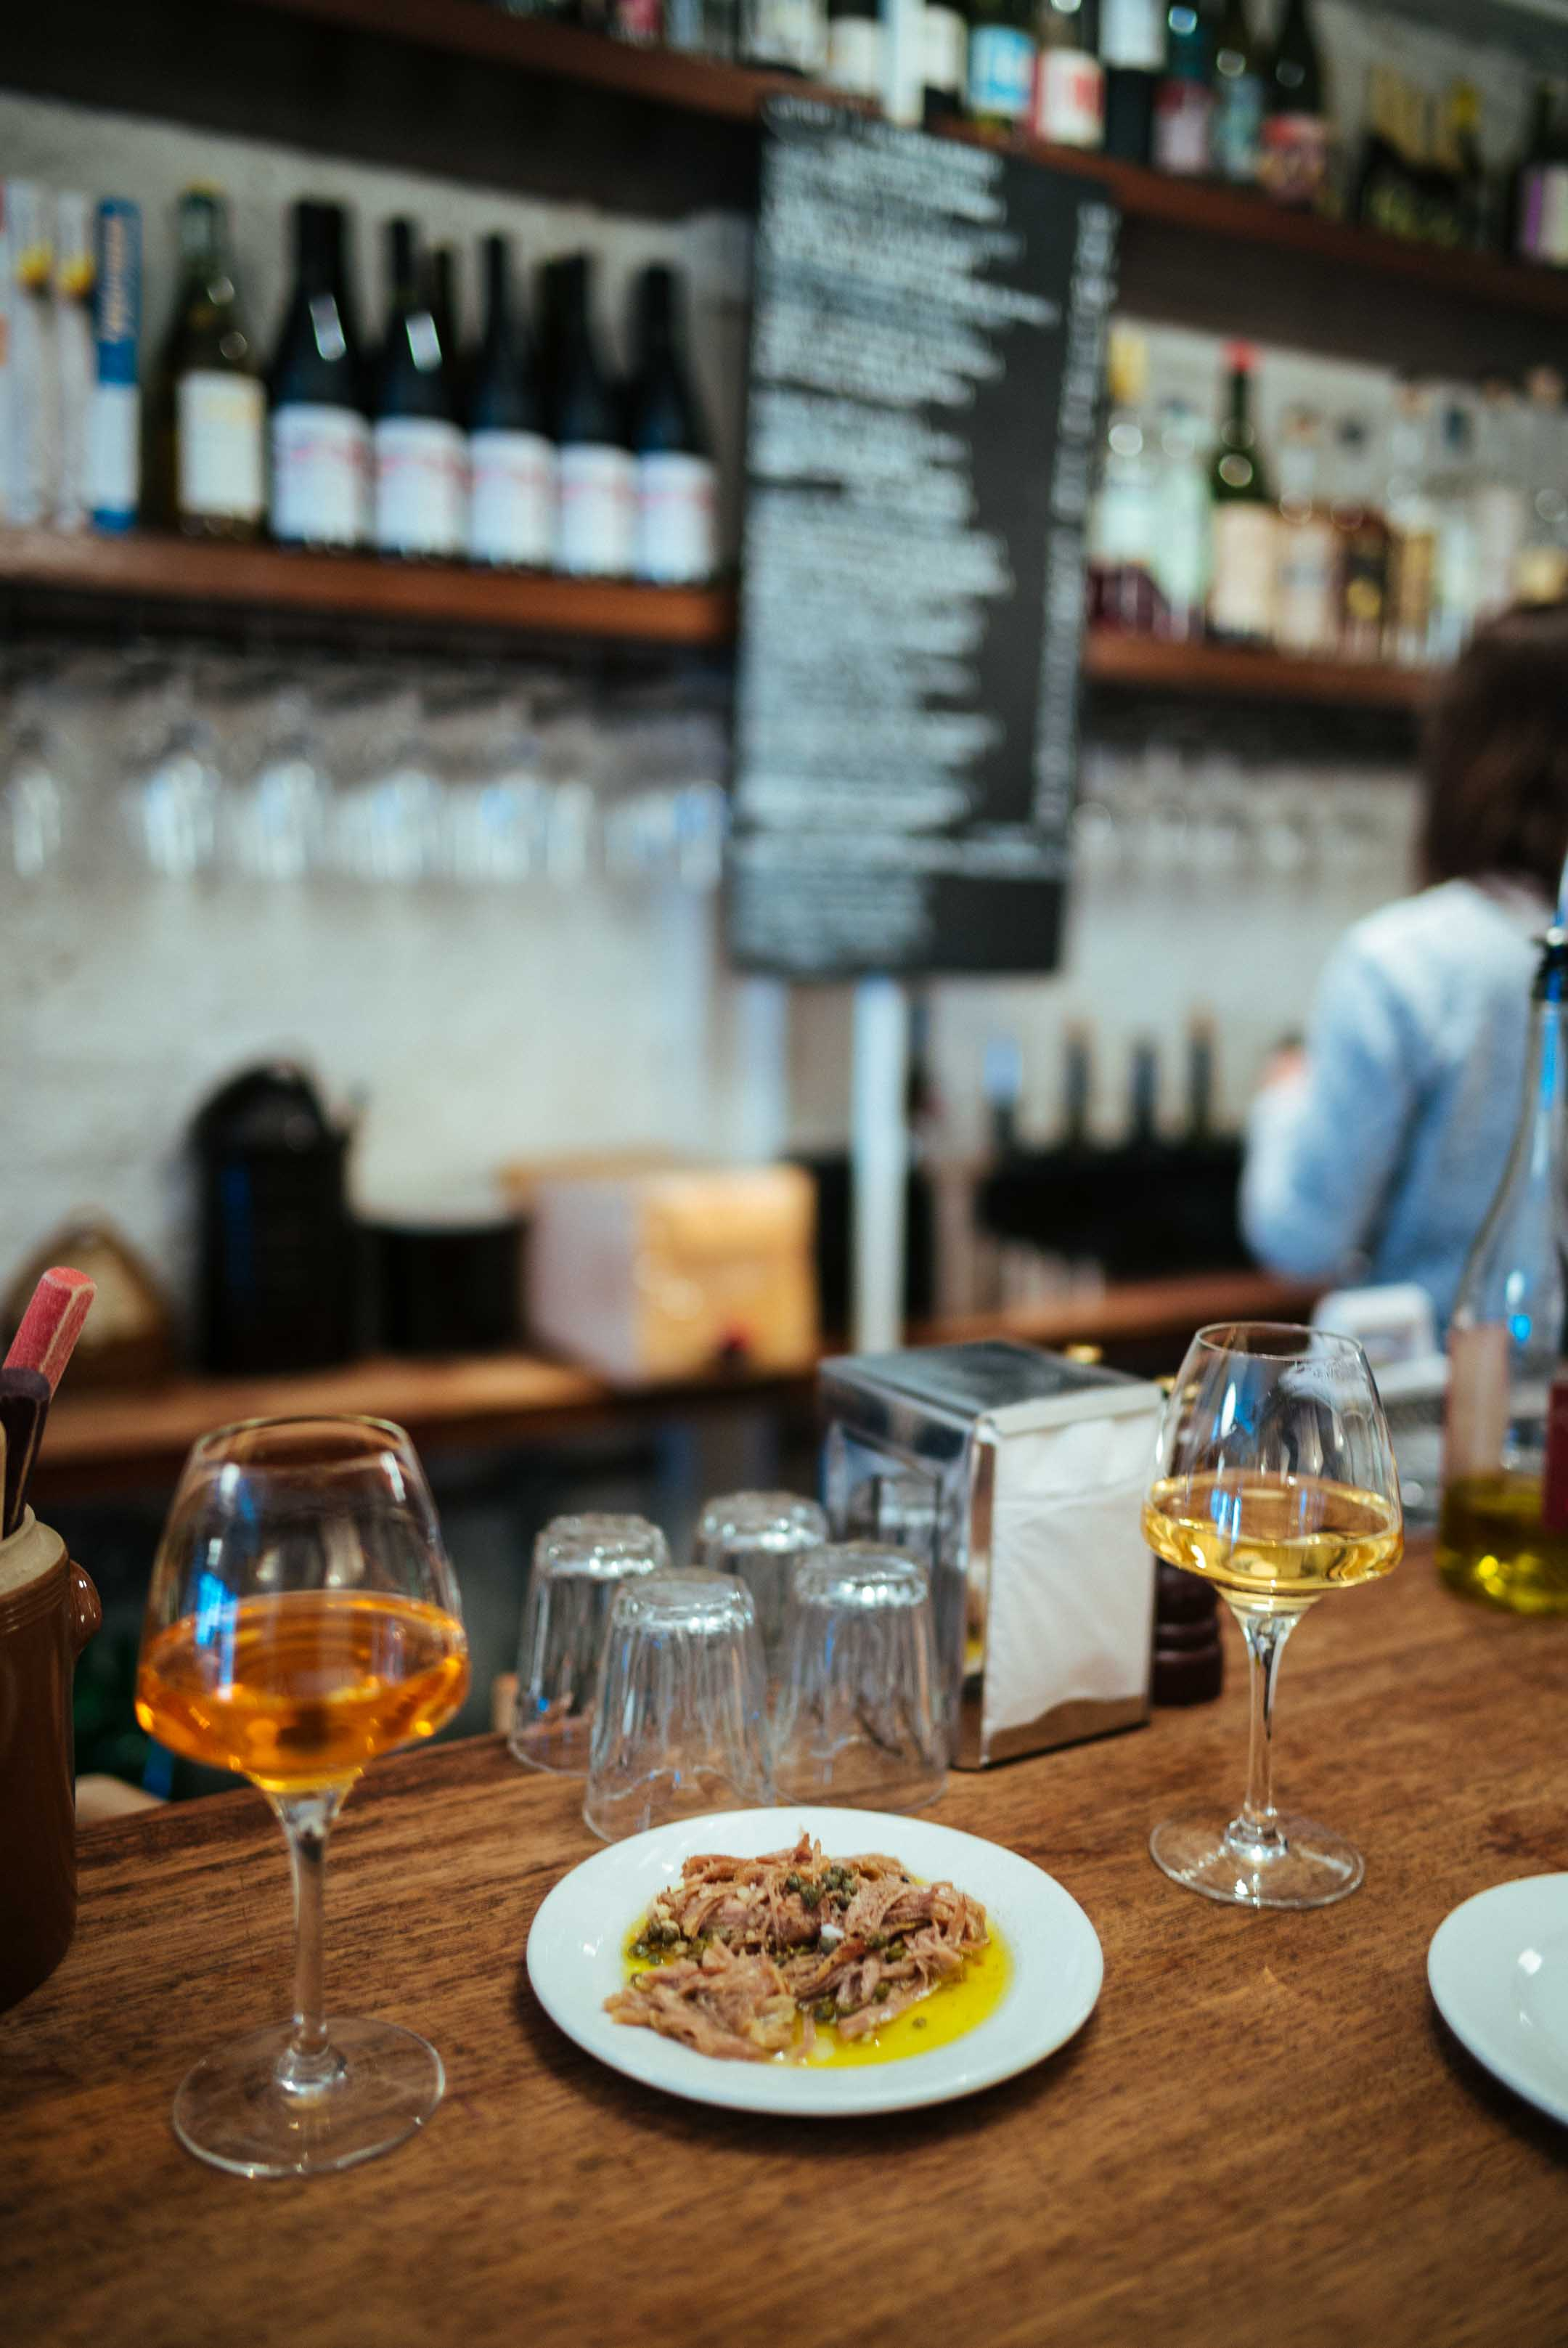 The Taste Edit suggests going Ducksoup to eat or a glass of natural wine - it's the best restaurant and natural wine bar in London. You'll find daily changing menu filled with simple and seasonal dishes.